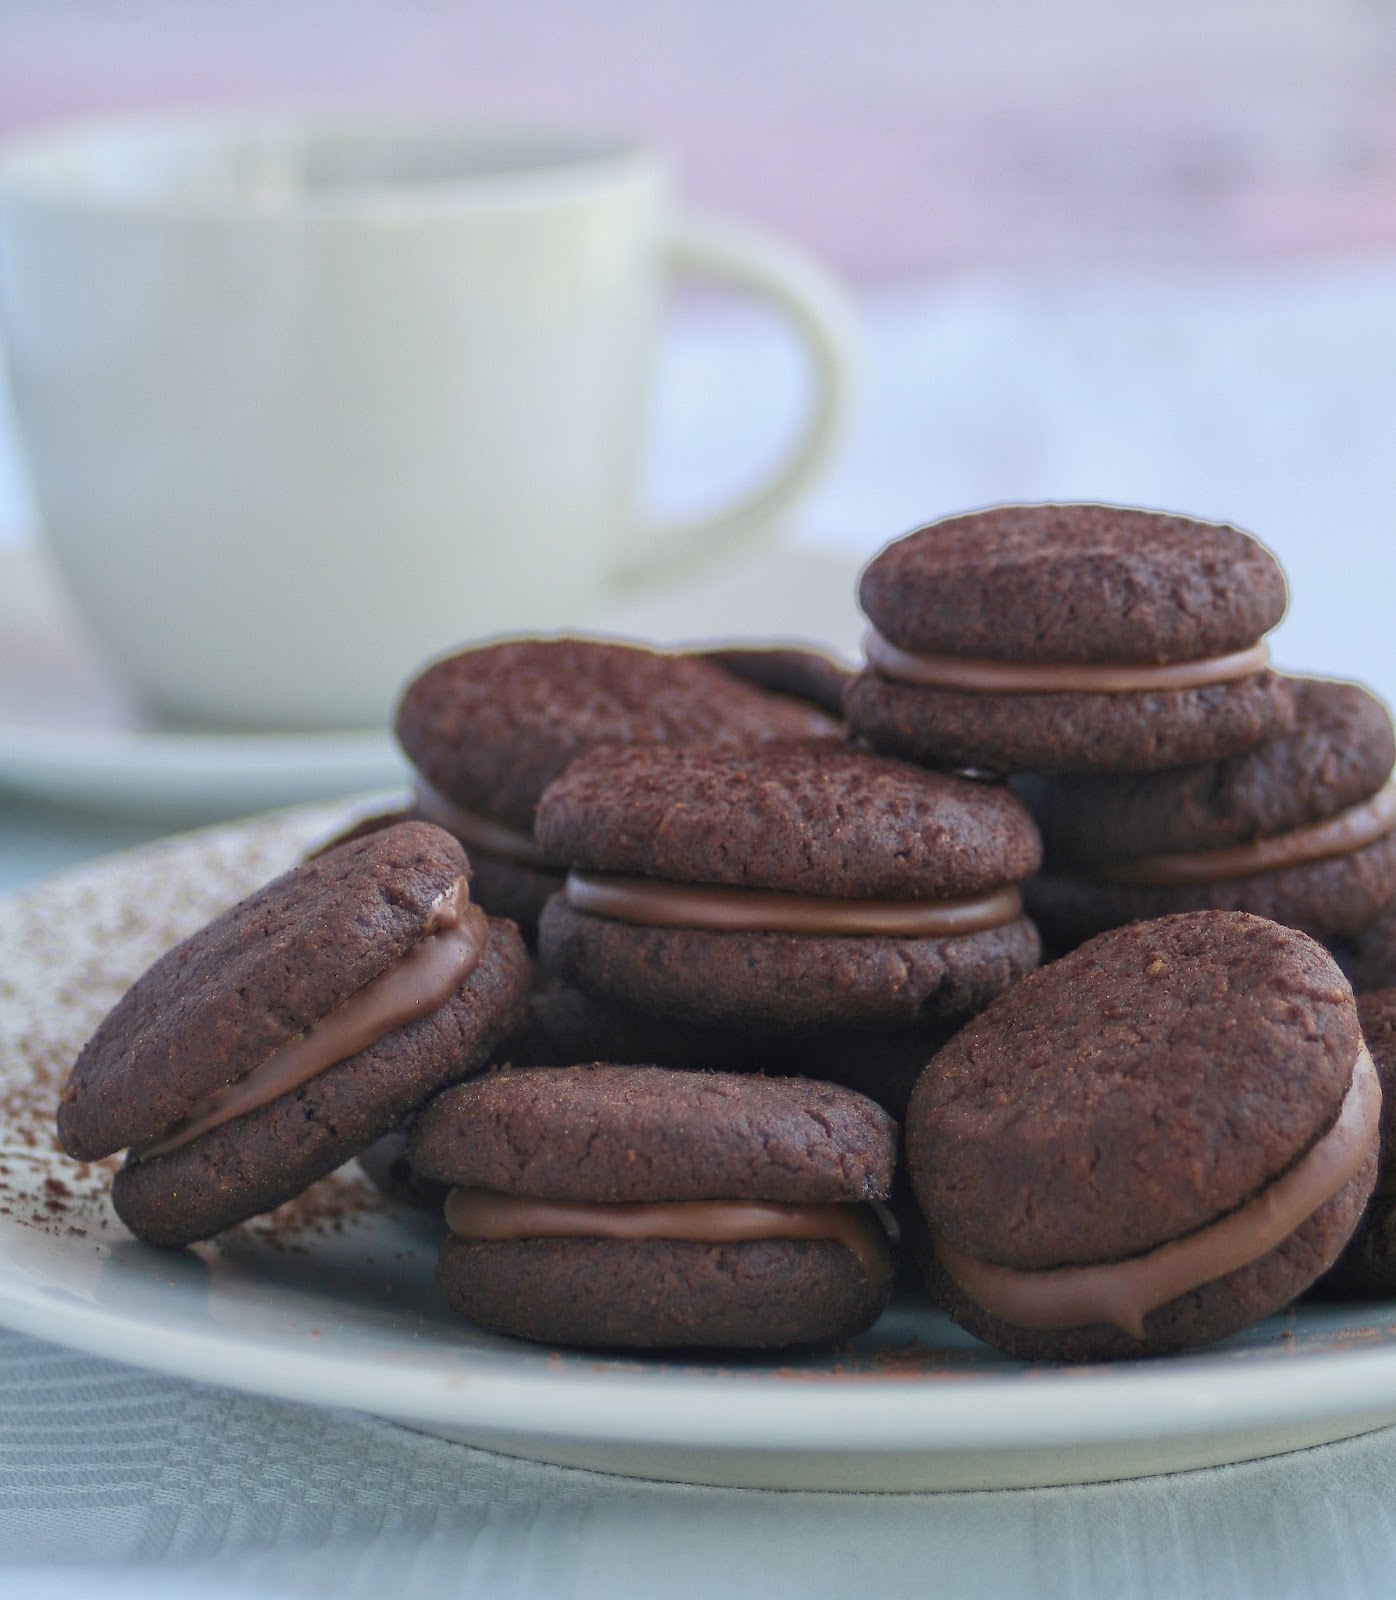 Cupcakes & Couscous: Chocolate Sandwich Biscuits1396 x 1600 jpeg 231kB